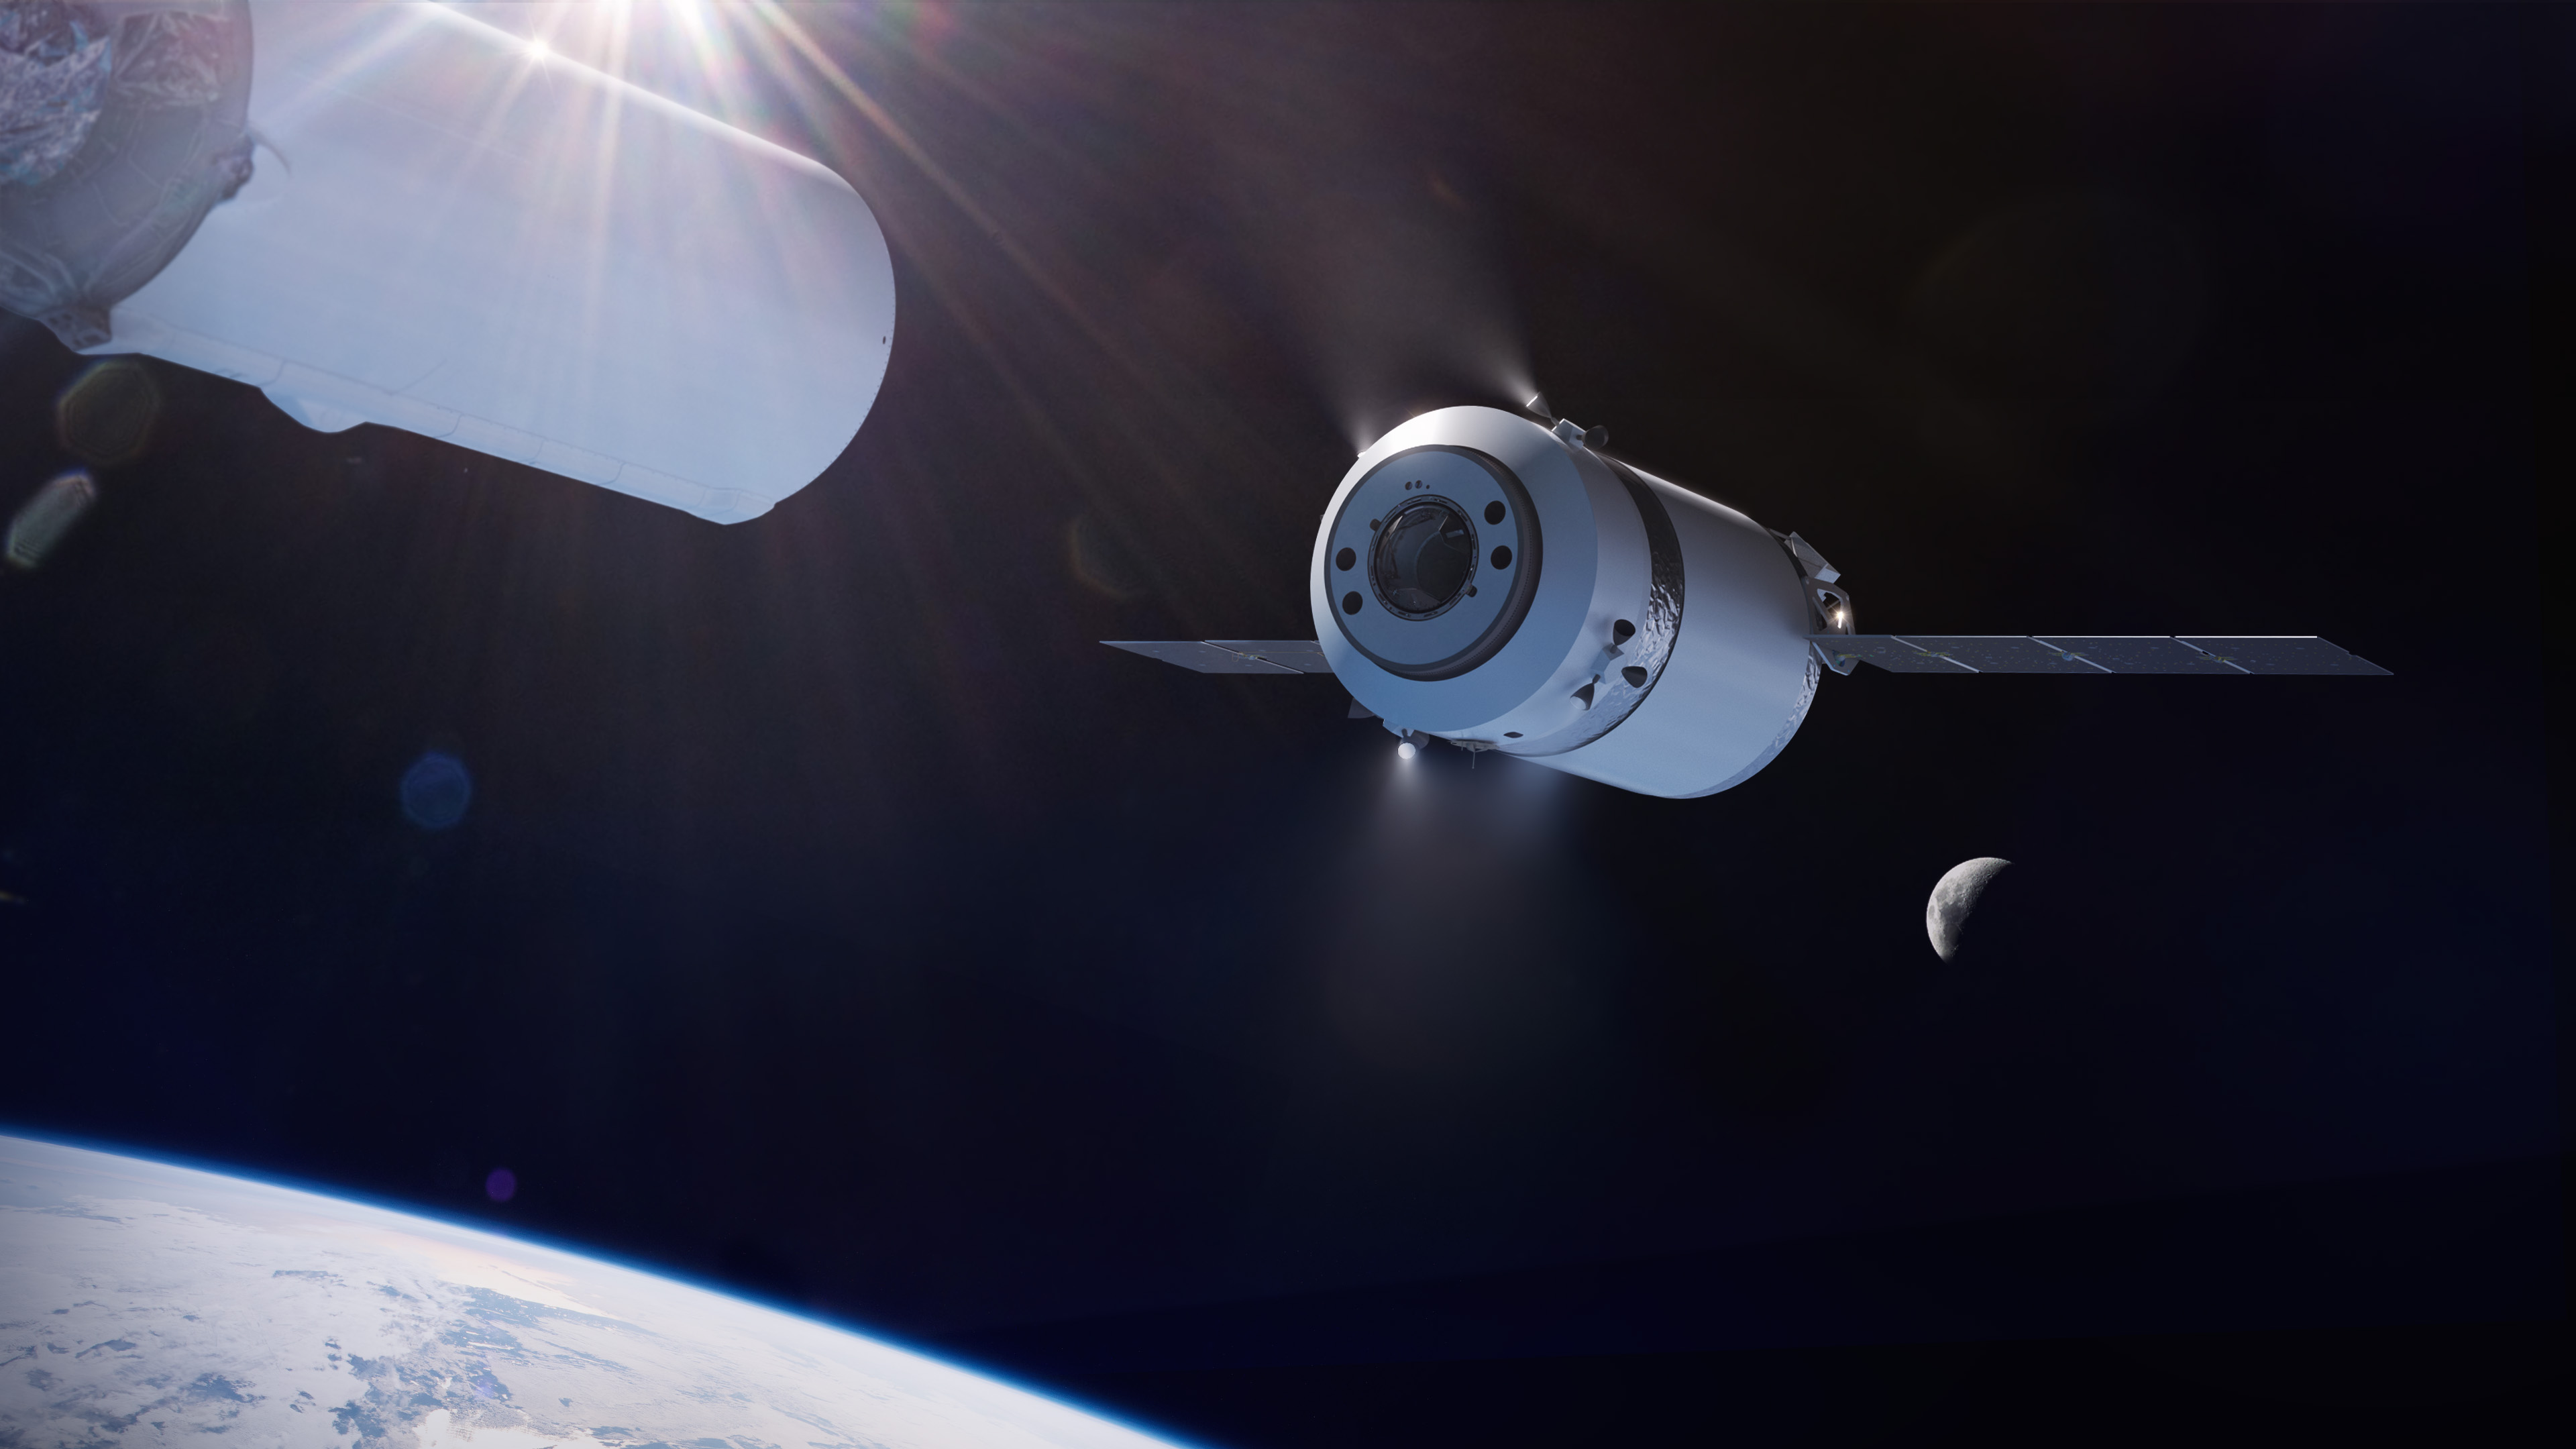 NASA Chooses SpaceX for Commercial Logistics Services for Artemis Lunar Gateway